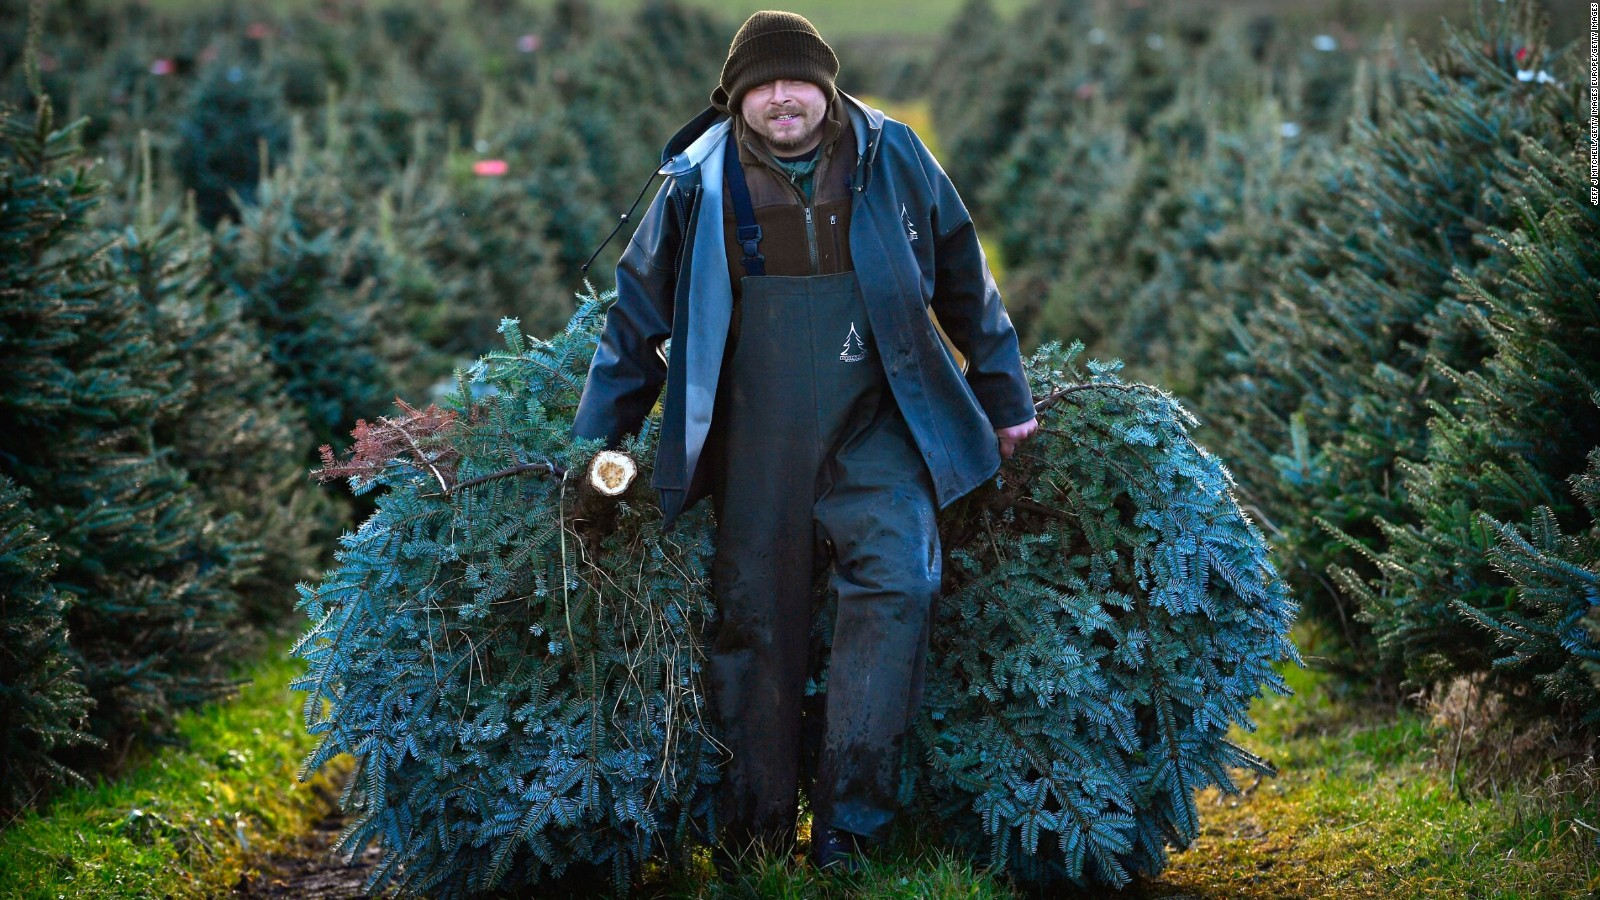 Real or fake: Which Christmas tree should you buy? - CNN